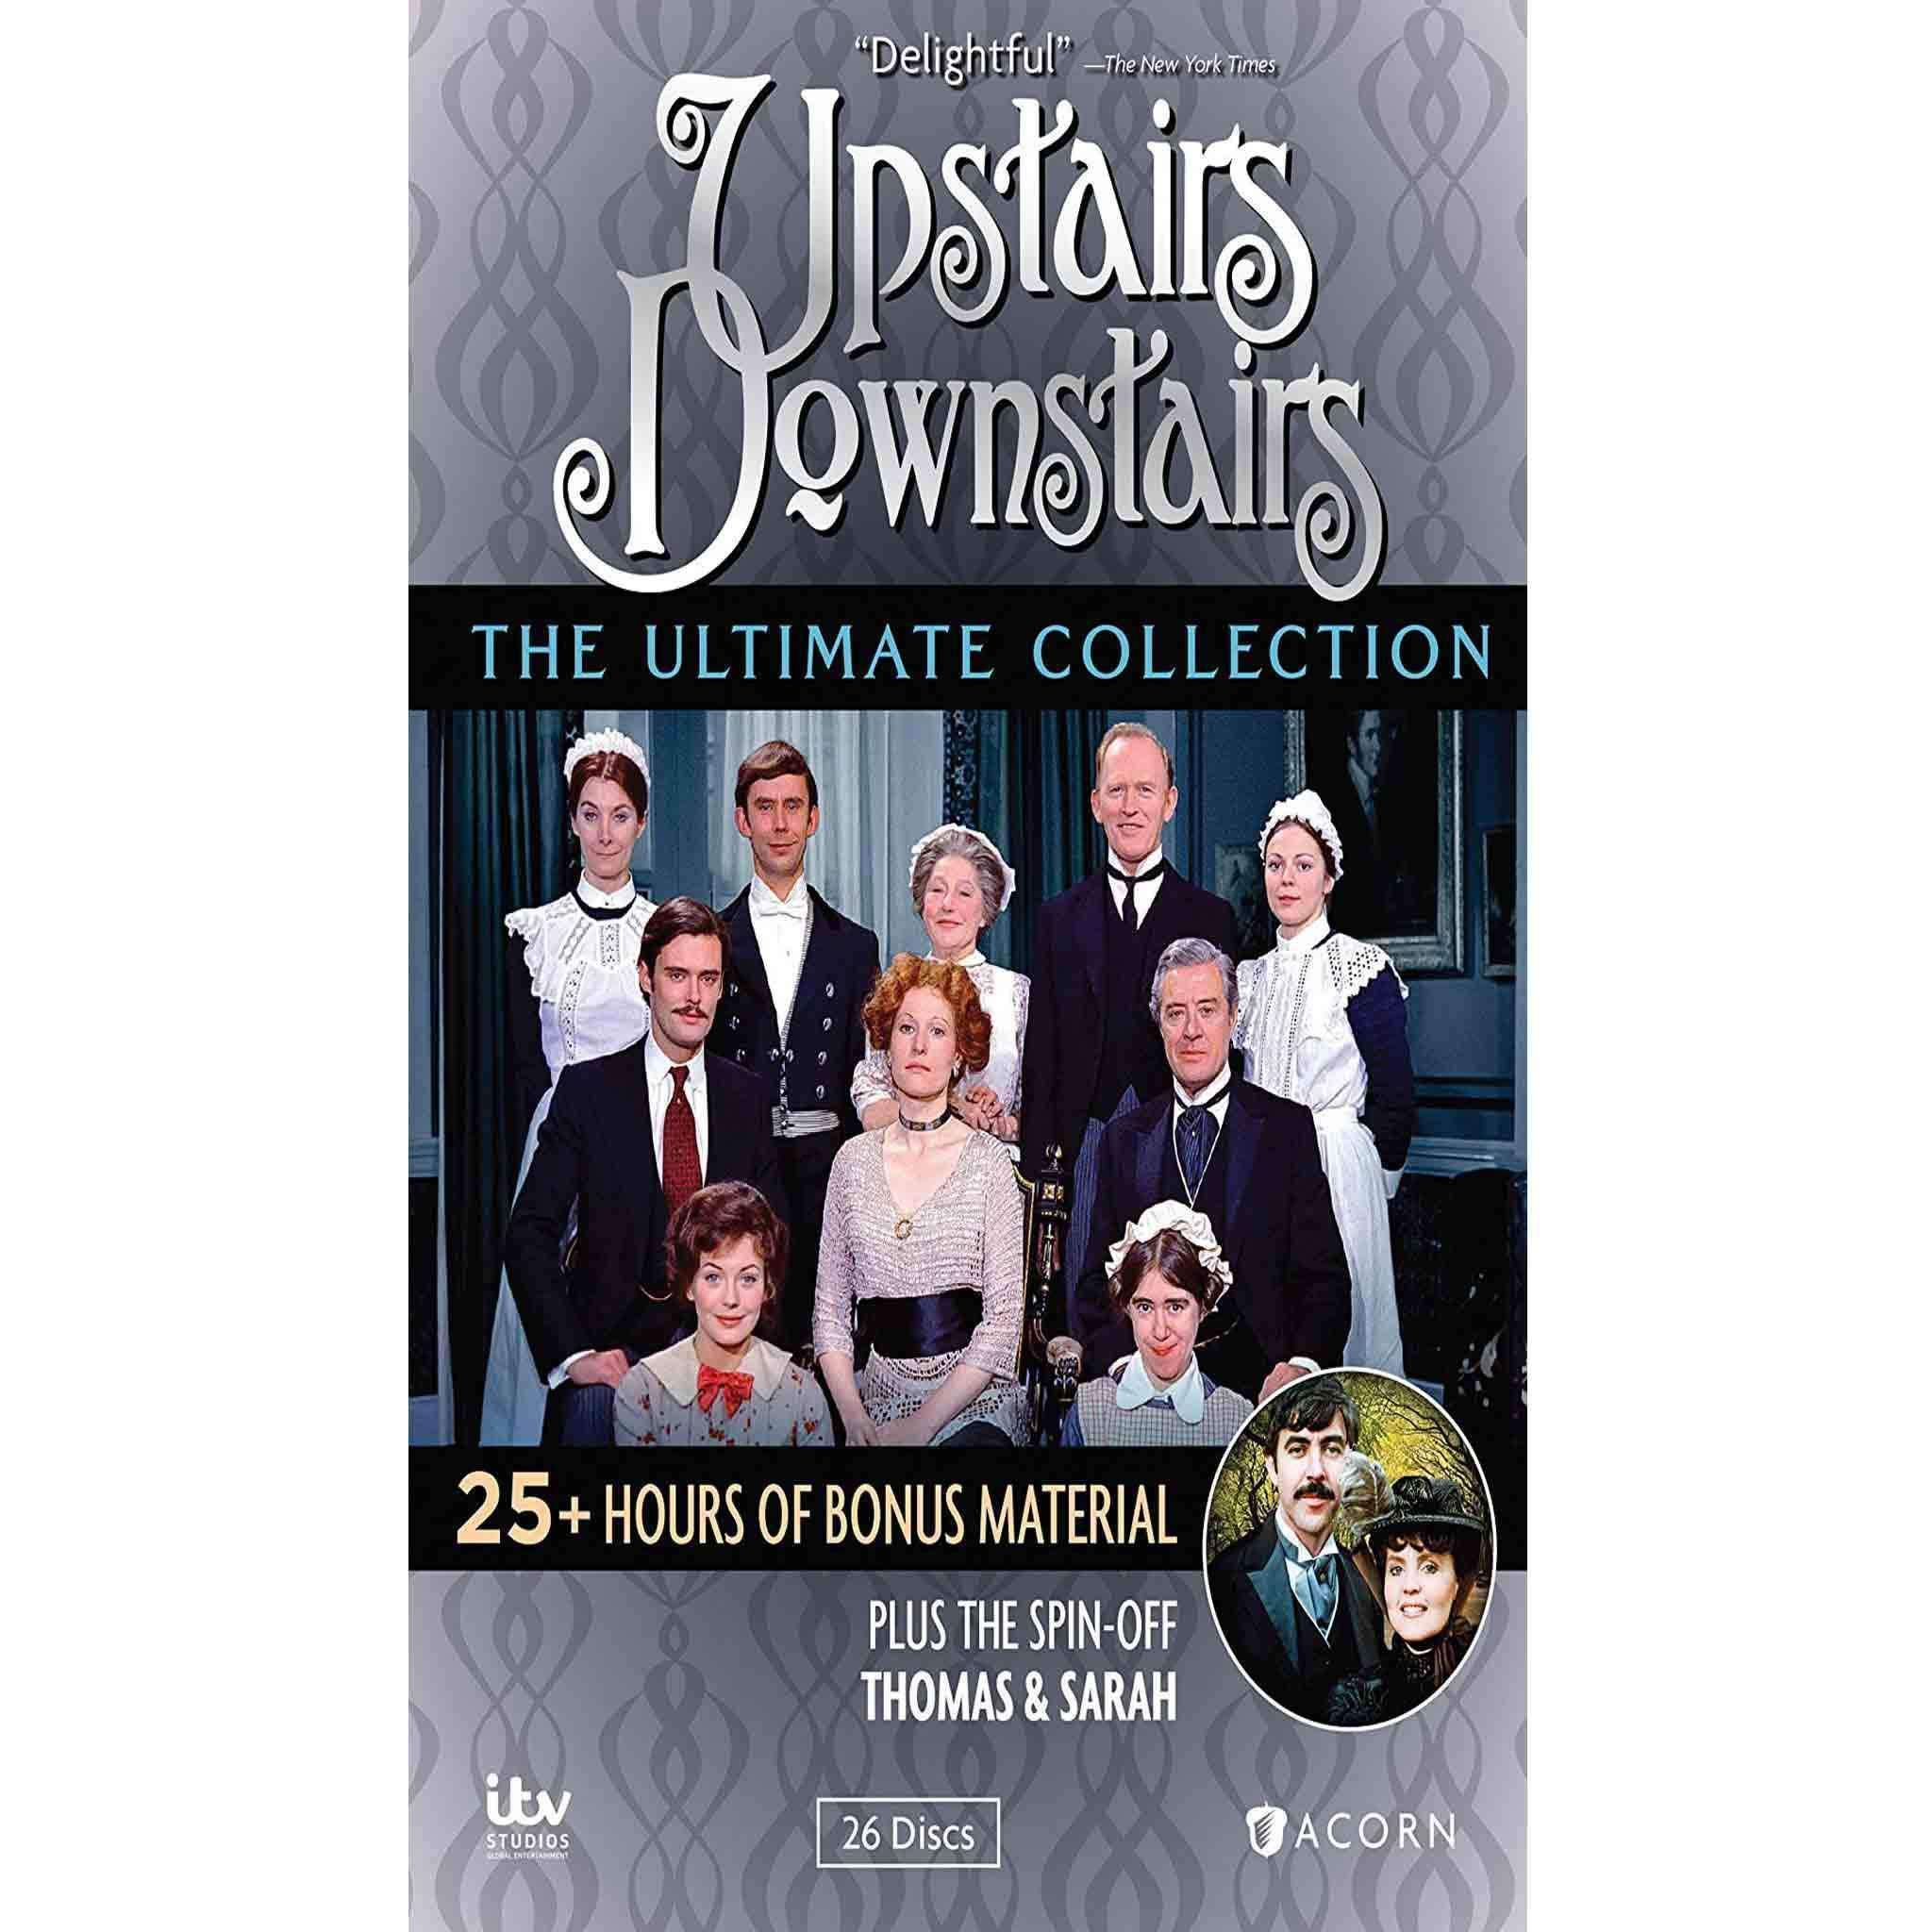 Upstairs Downstairs DVD Complete Series Box Set Acorn Media DVDs & Blu-ray Discs